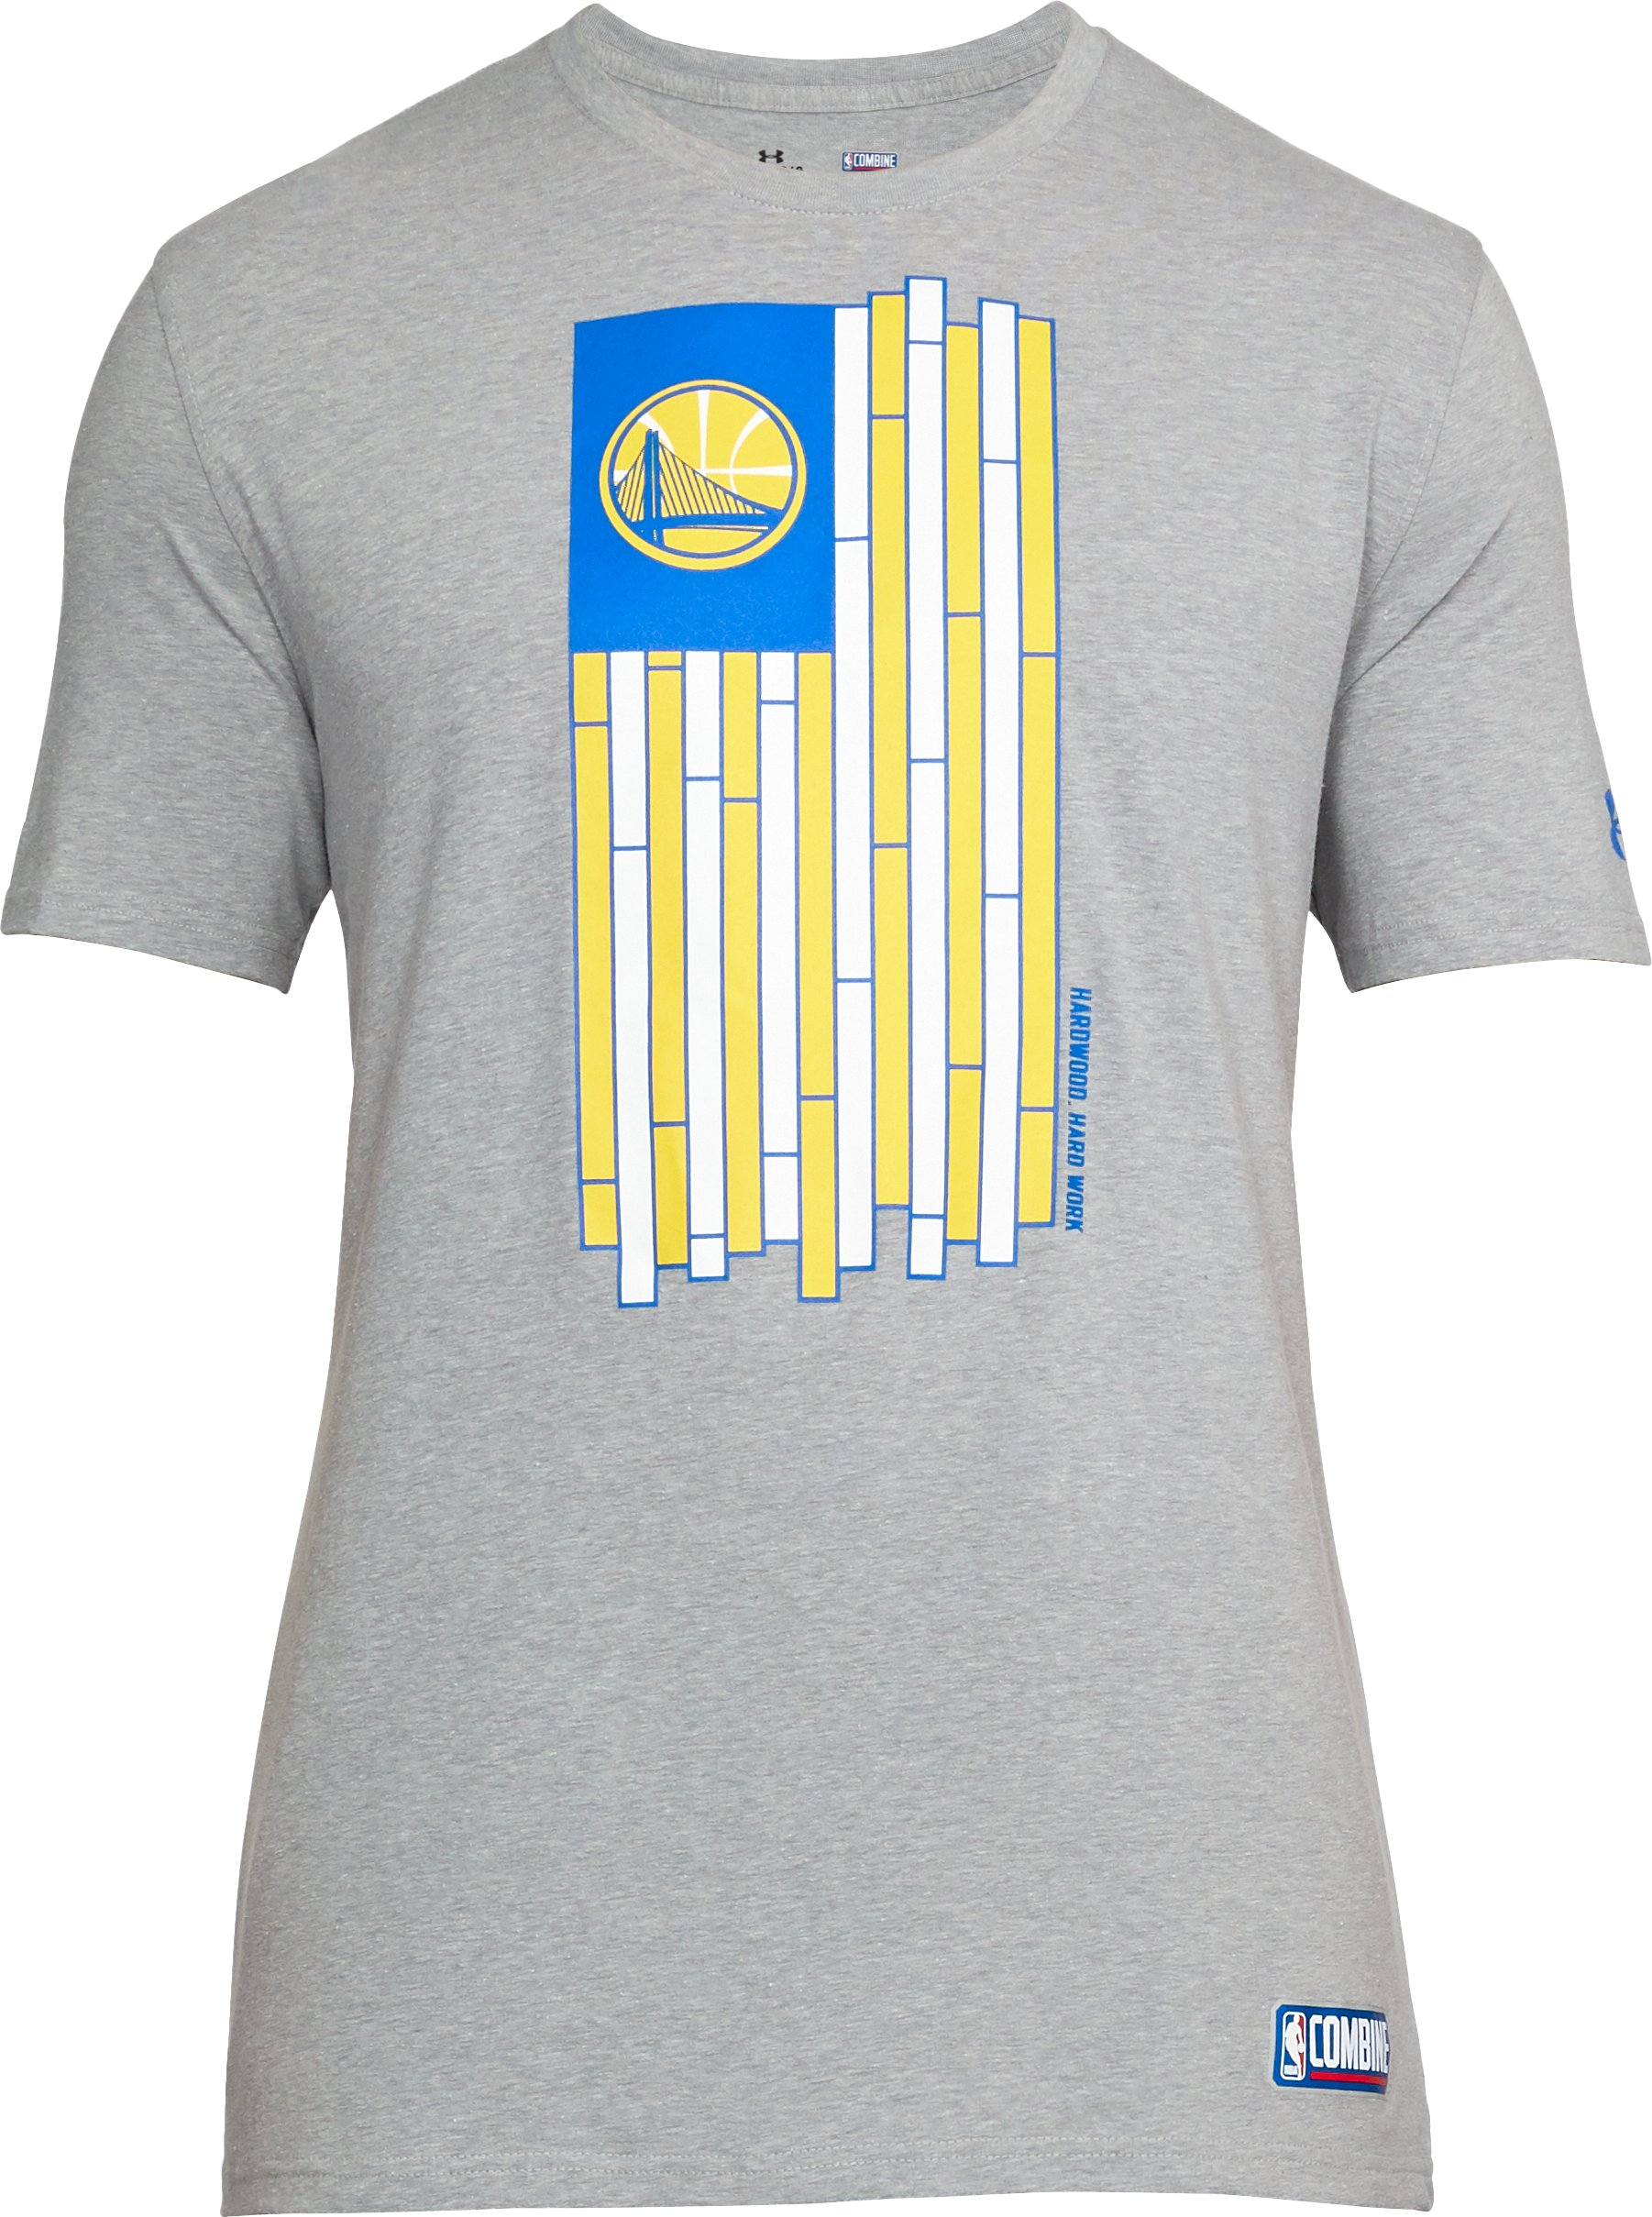 Men's NBA Combine UA Court Flag T-Shirt, NBA_GOLDEN STATE WARRIORS_STEEL,